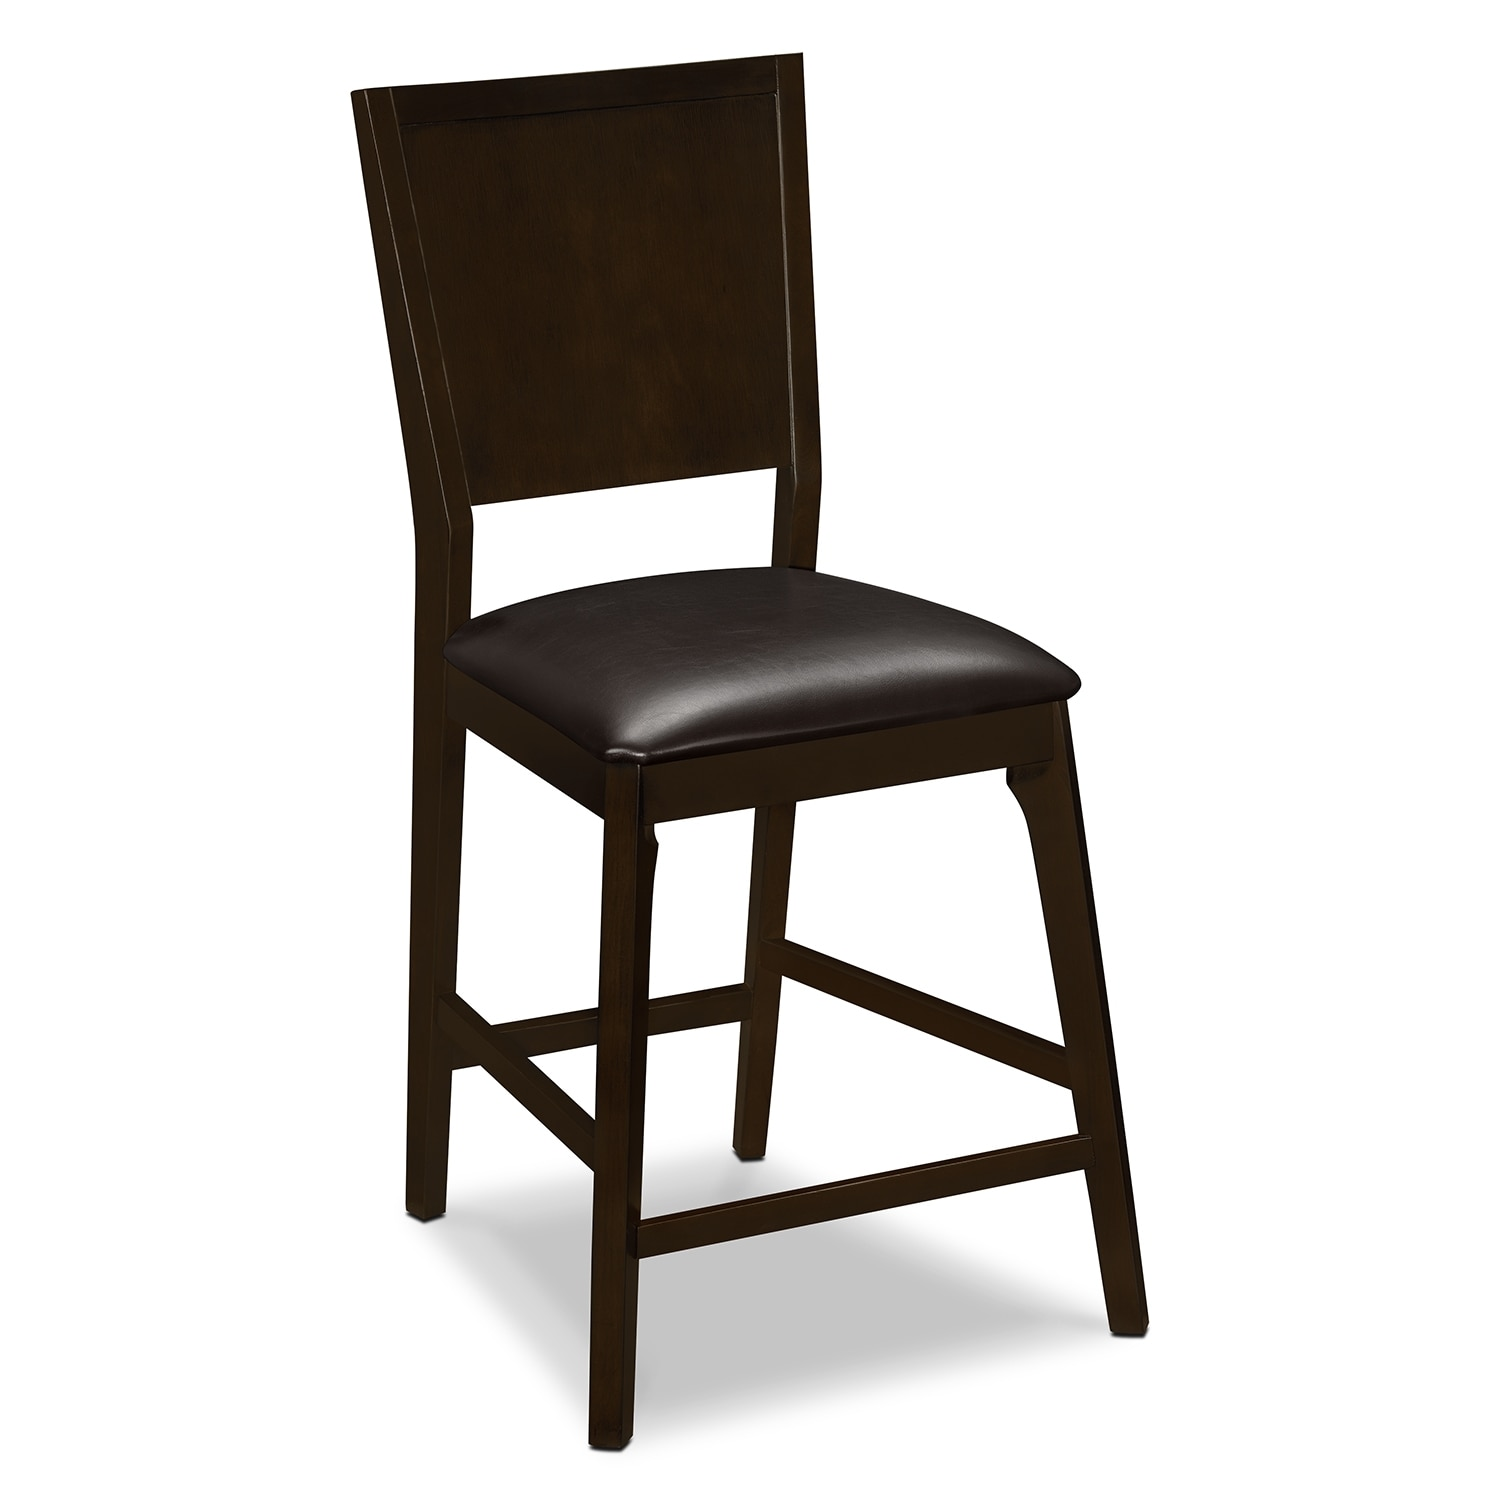 Mystic Counter-Height Stool - Merlot and Chocolate